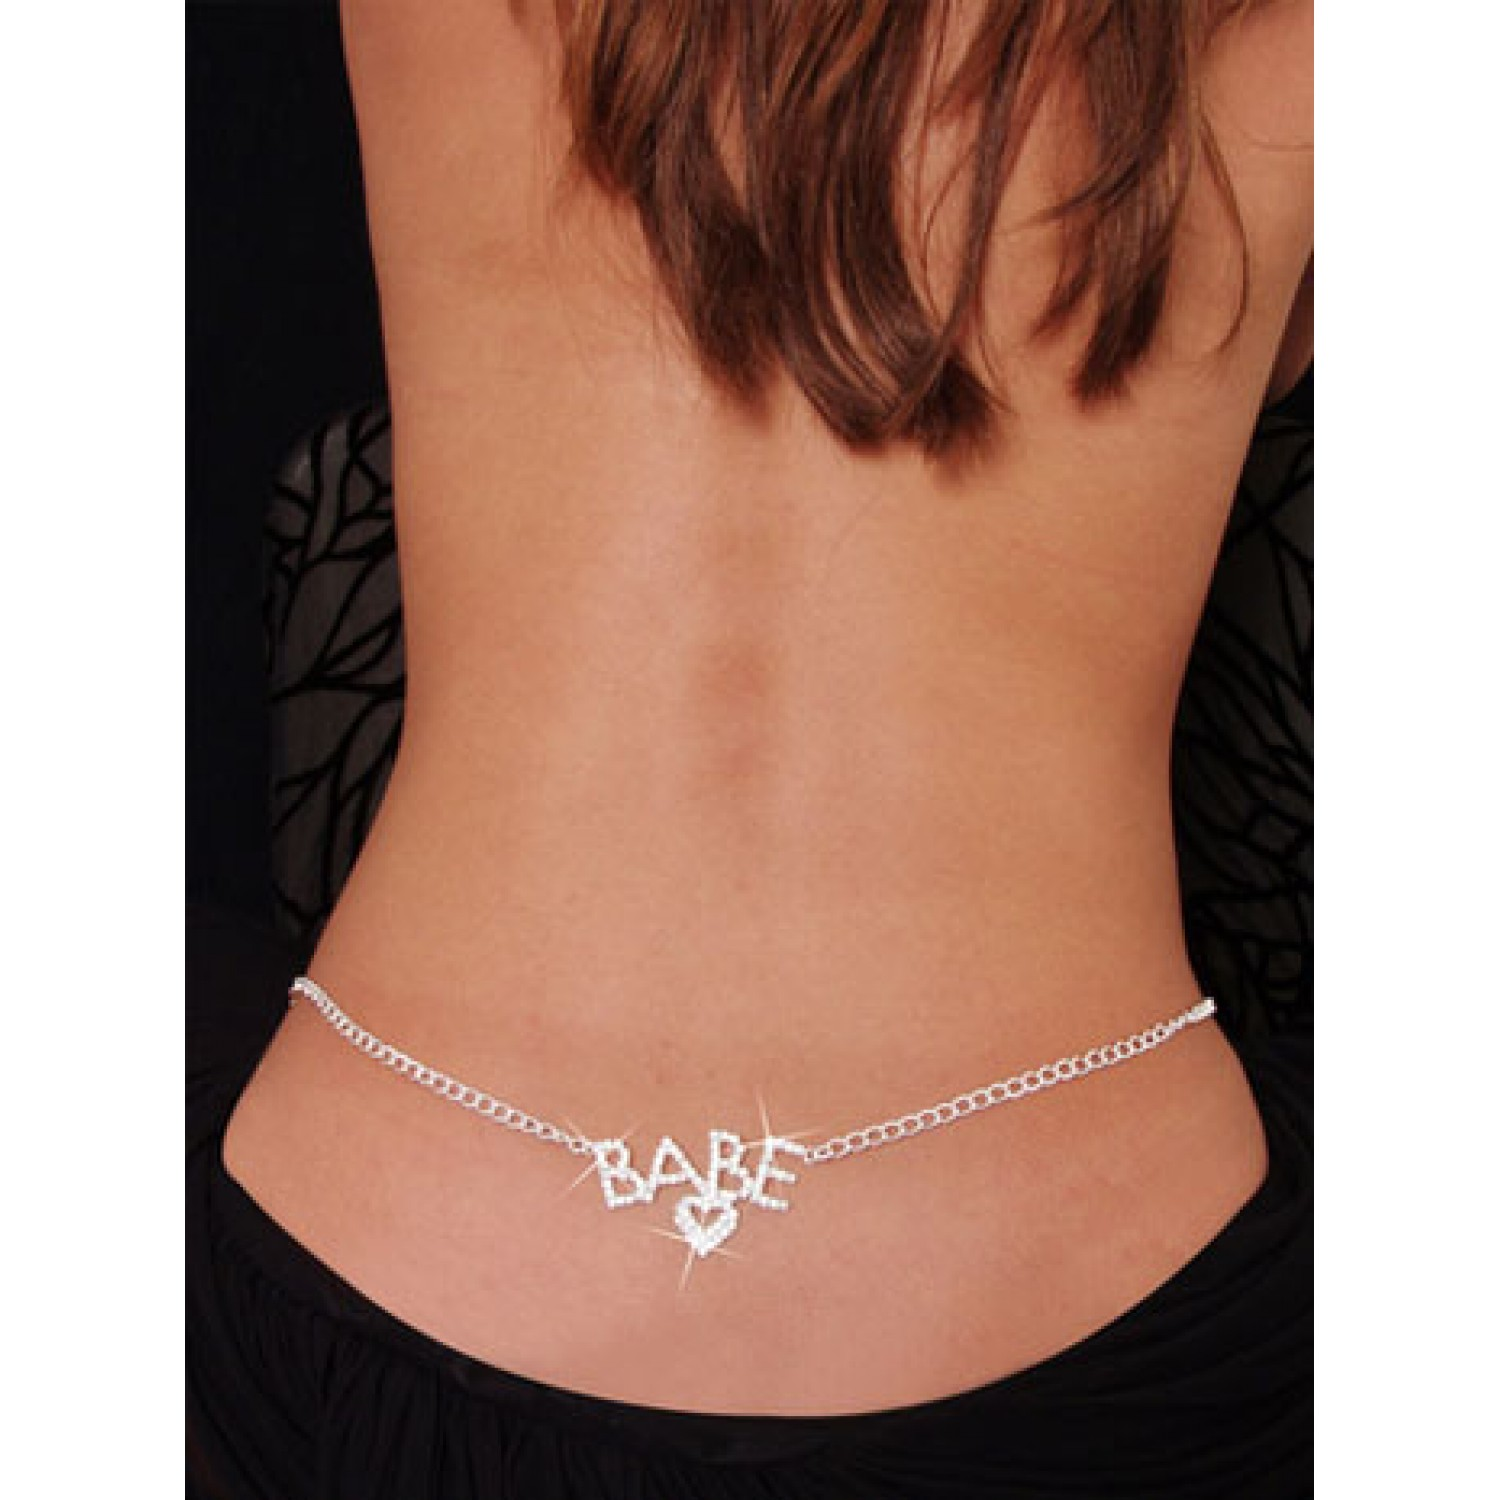 gojilove Babe Rhinestone Belly Chain and Lower Back